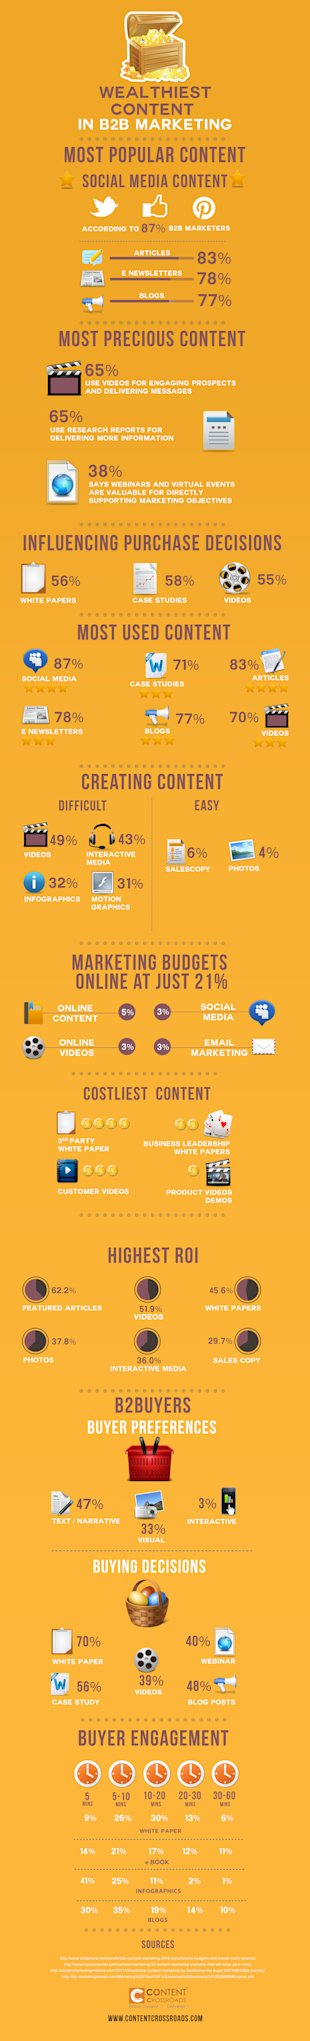 The Most Profitable Content in B2B Marketing [Infographic] image wealthiest content b2b marketing1